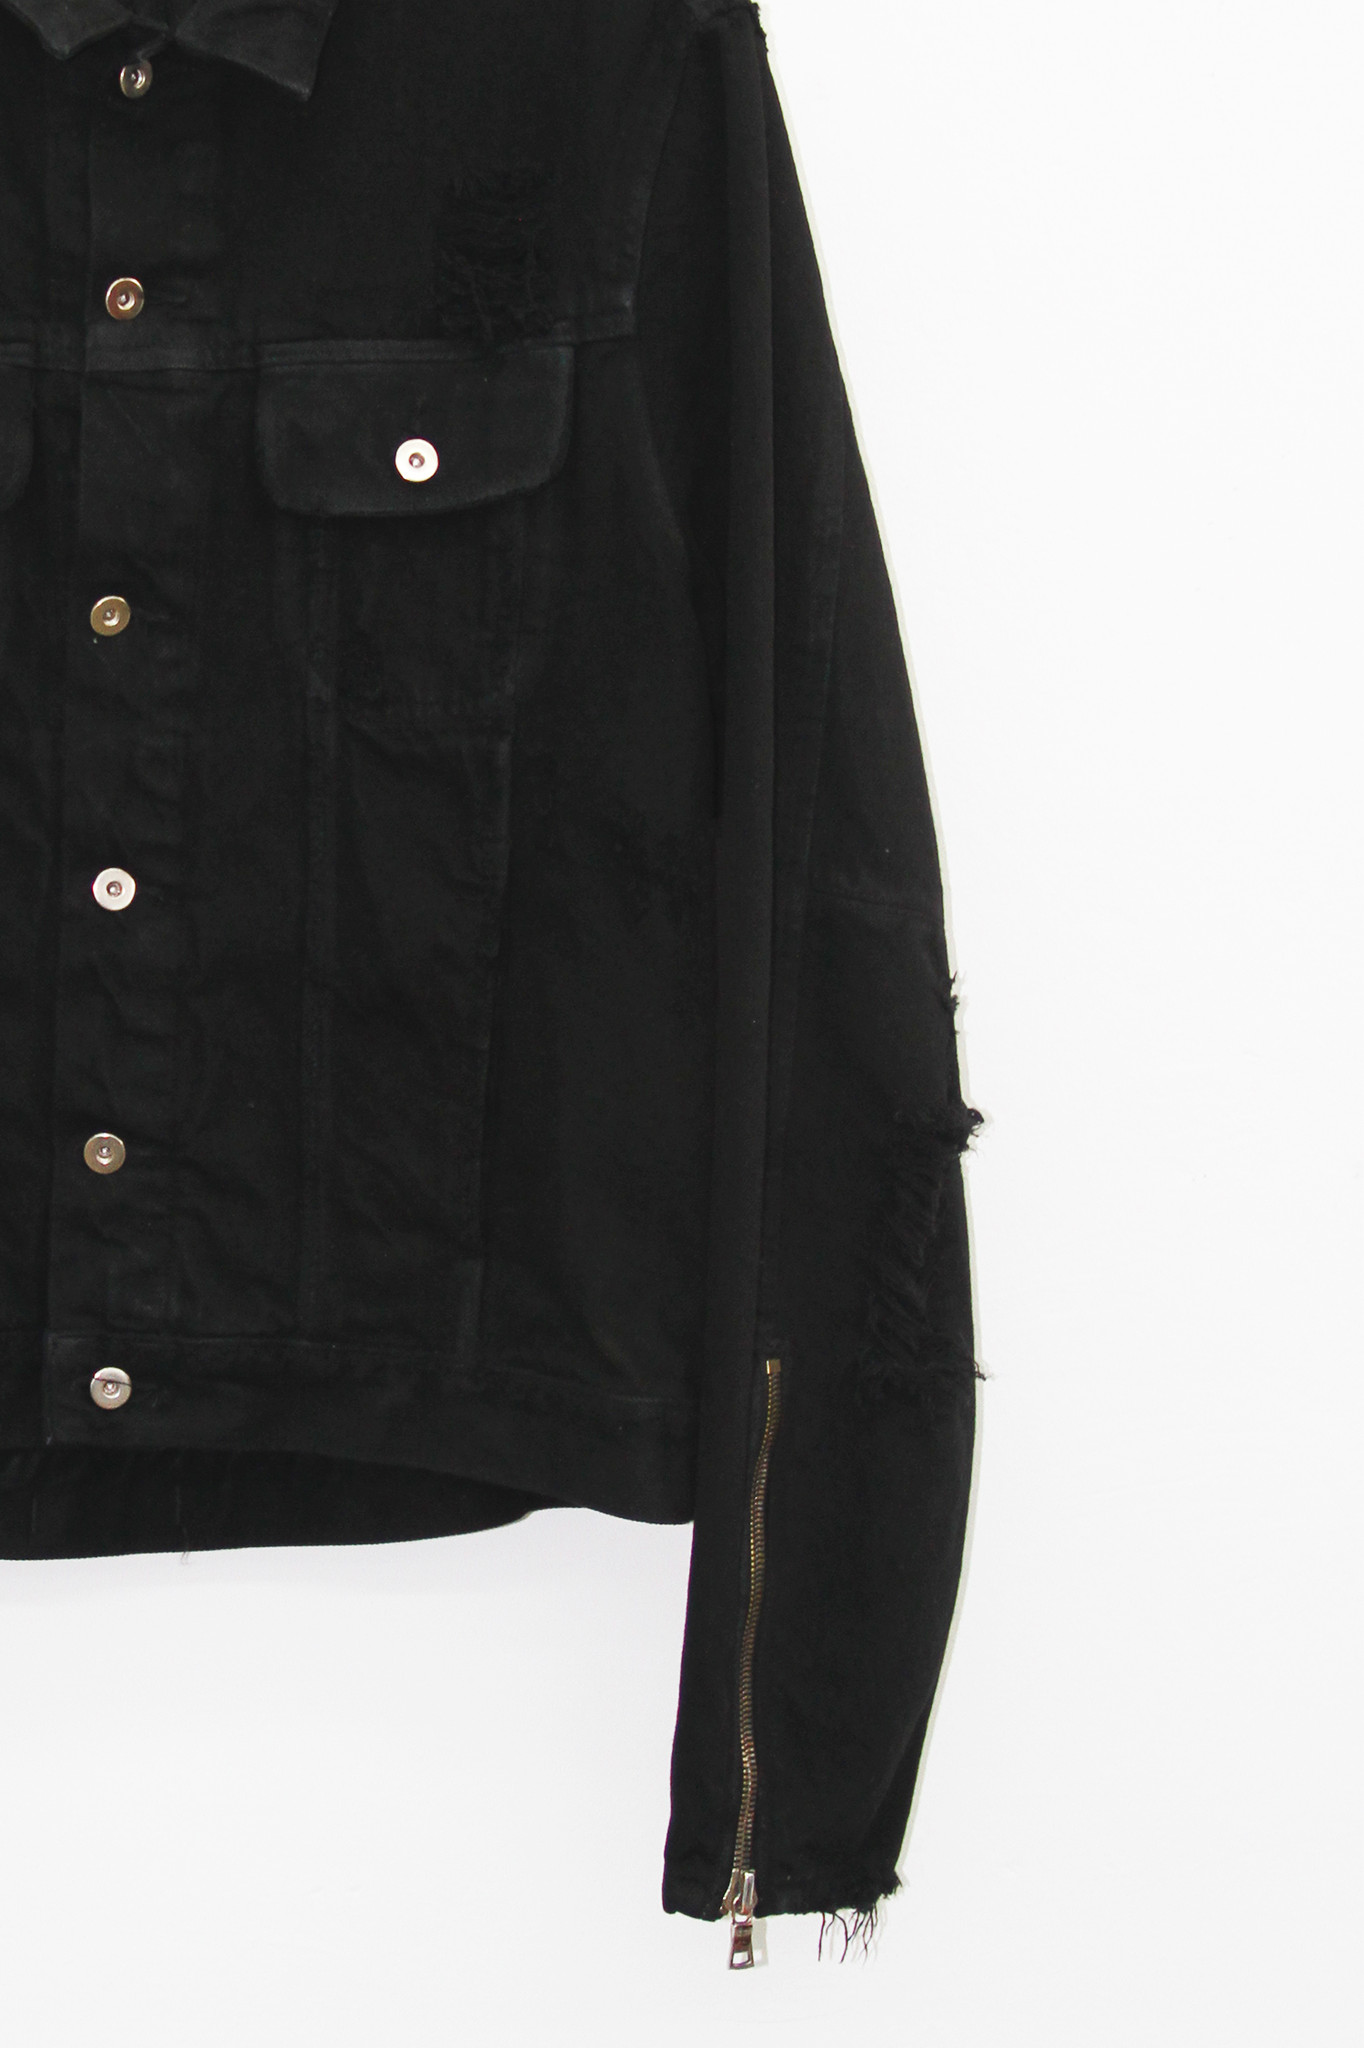 mr-completely-distressed-moto-jacket-detail